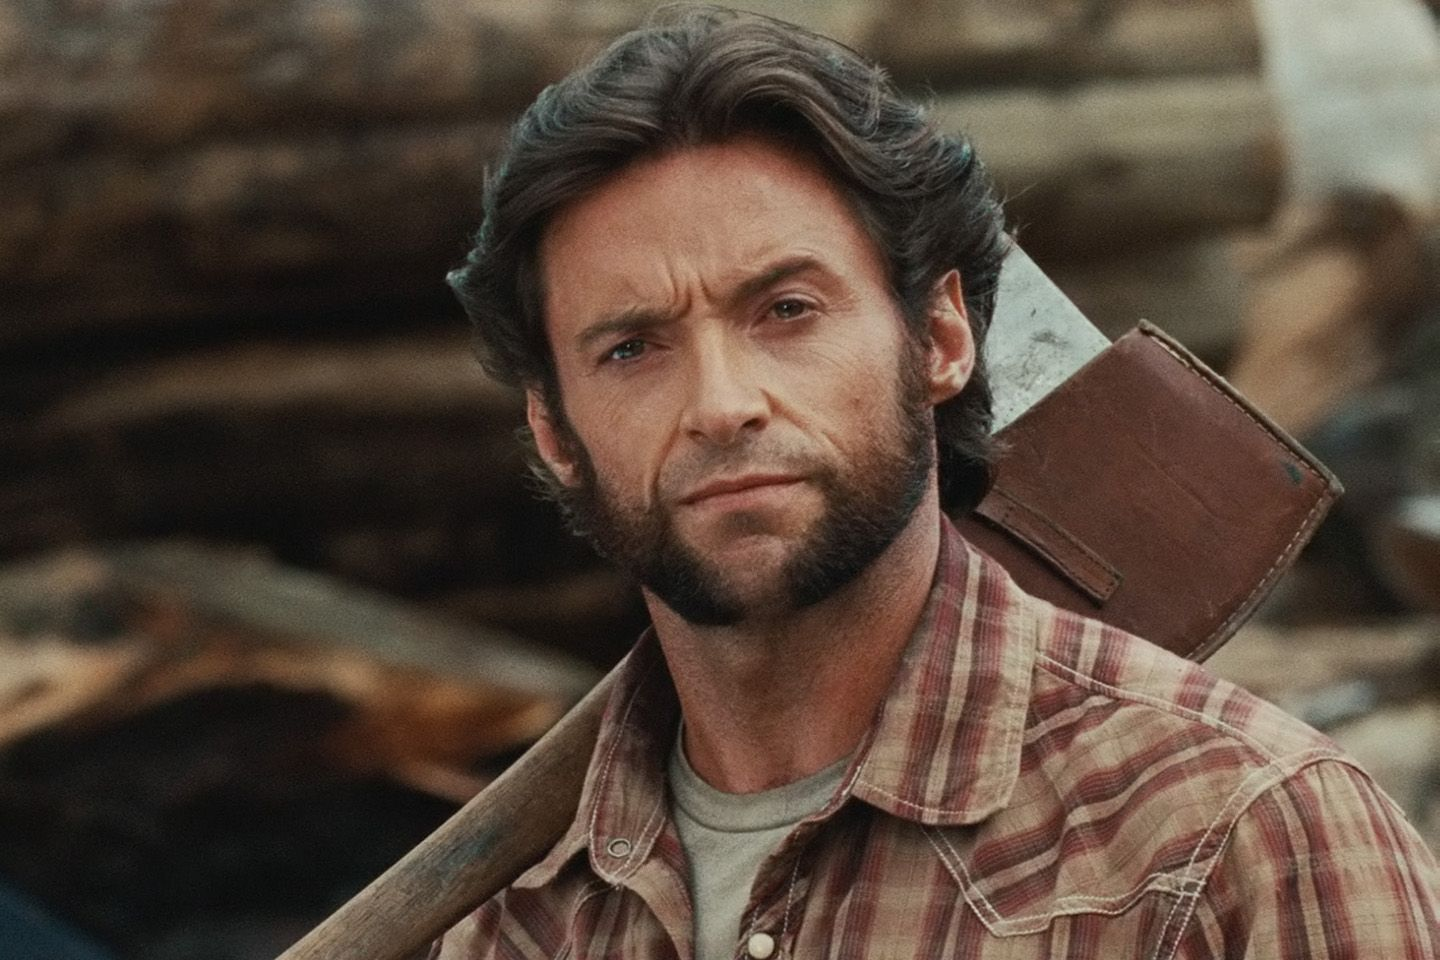 Hugh Jackman Hugh Jackman Looking To Go Vegan After Wolverine Filming Can T Tell You Why I Find This Pic Hot But I Do Vegan Abnehmen Schauspieler Promis